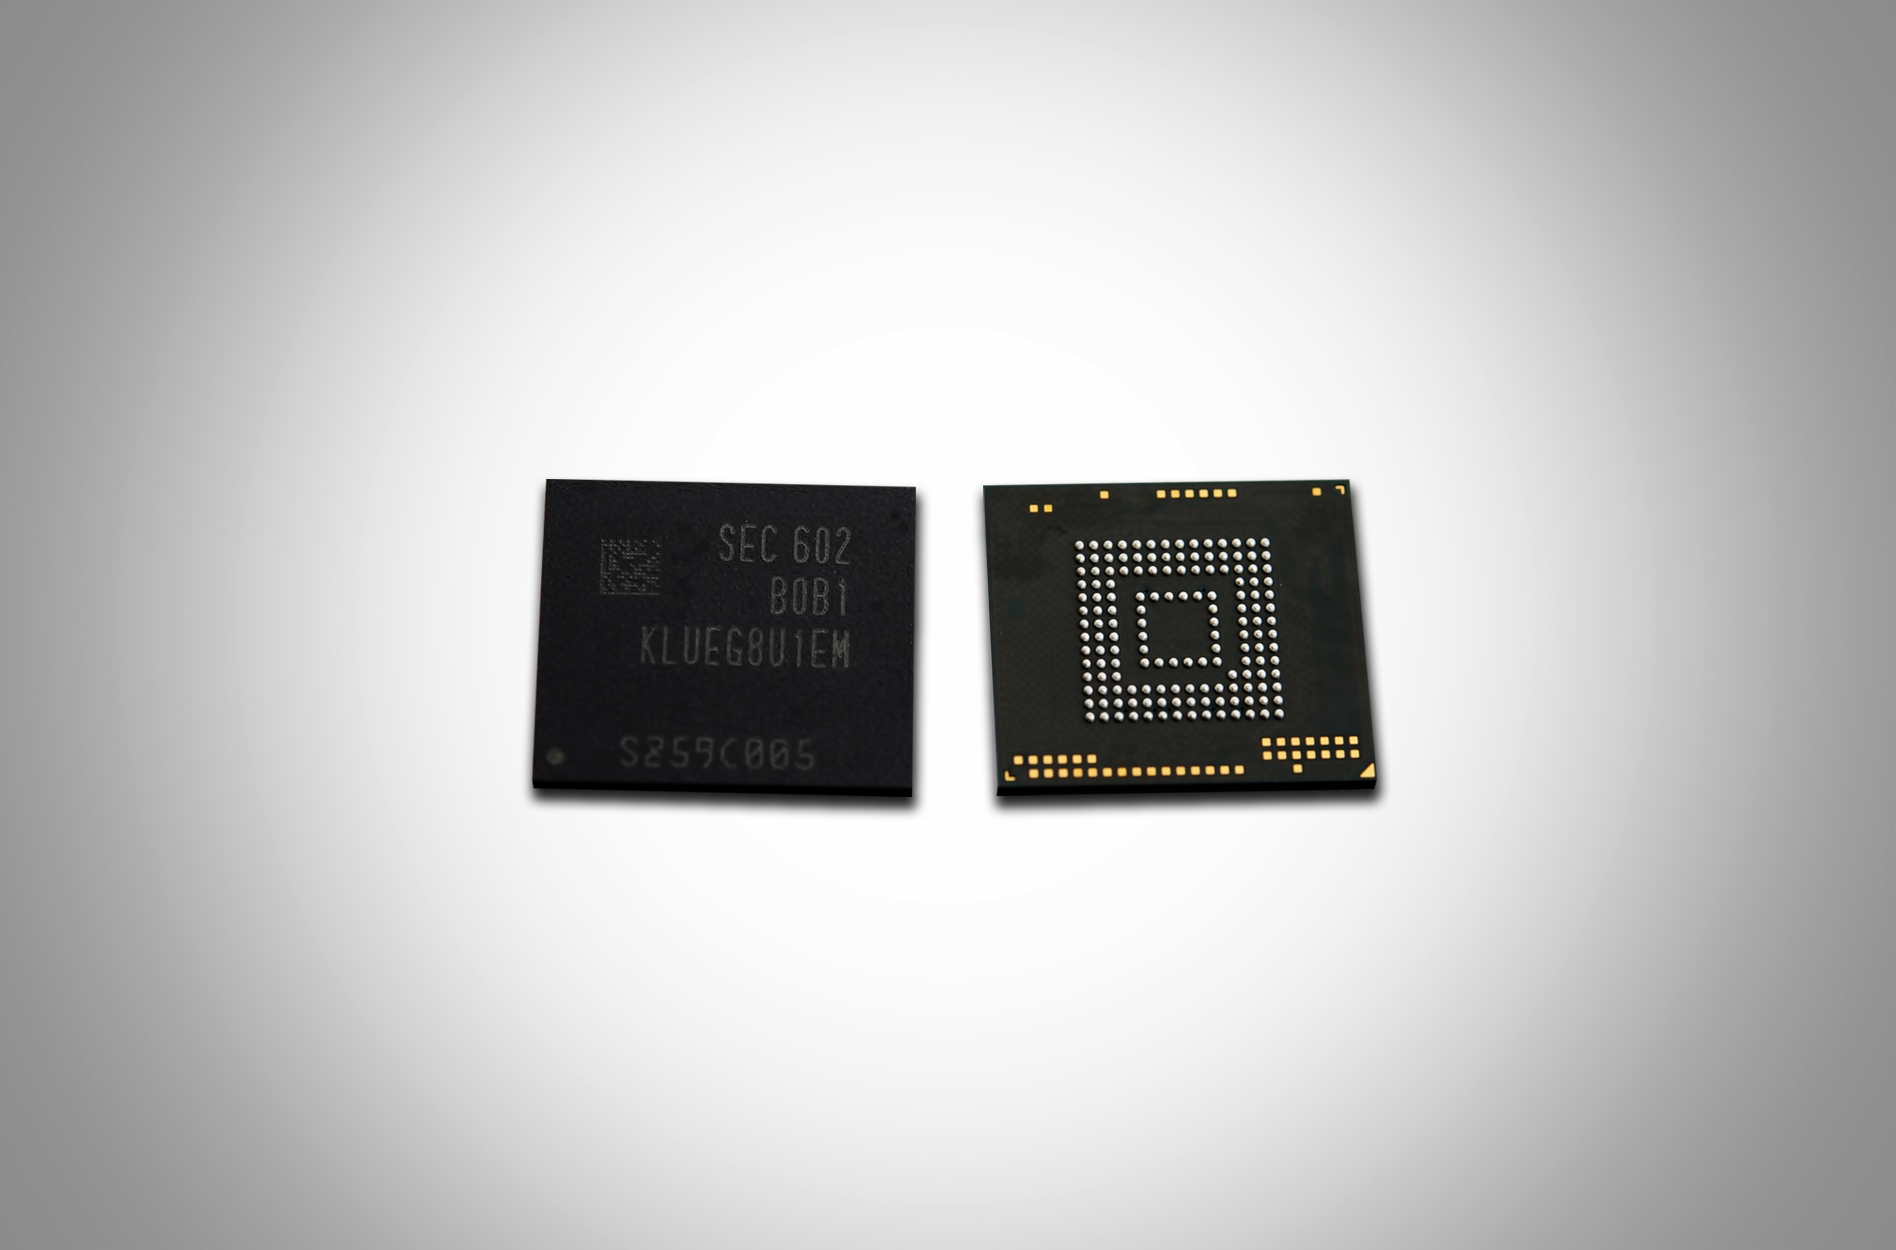 Samsungs-new-256GB-UFS-2.0-memory-chip-is-here (2)